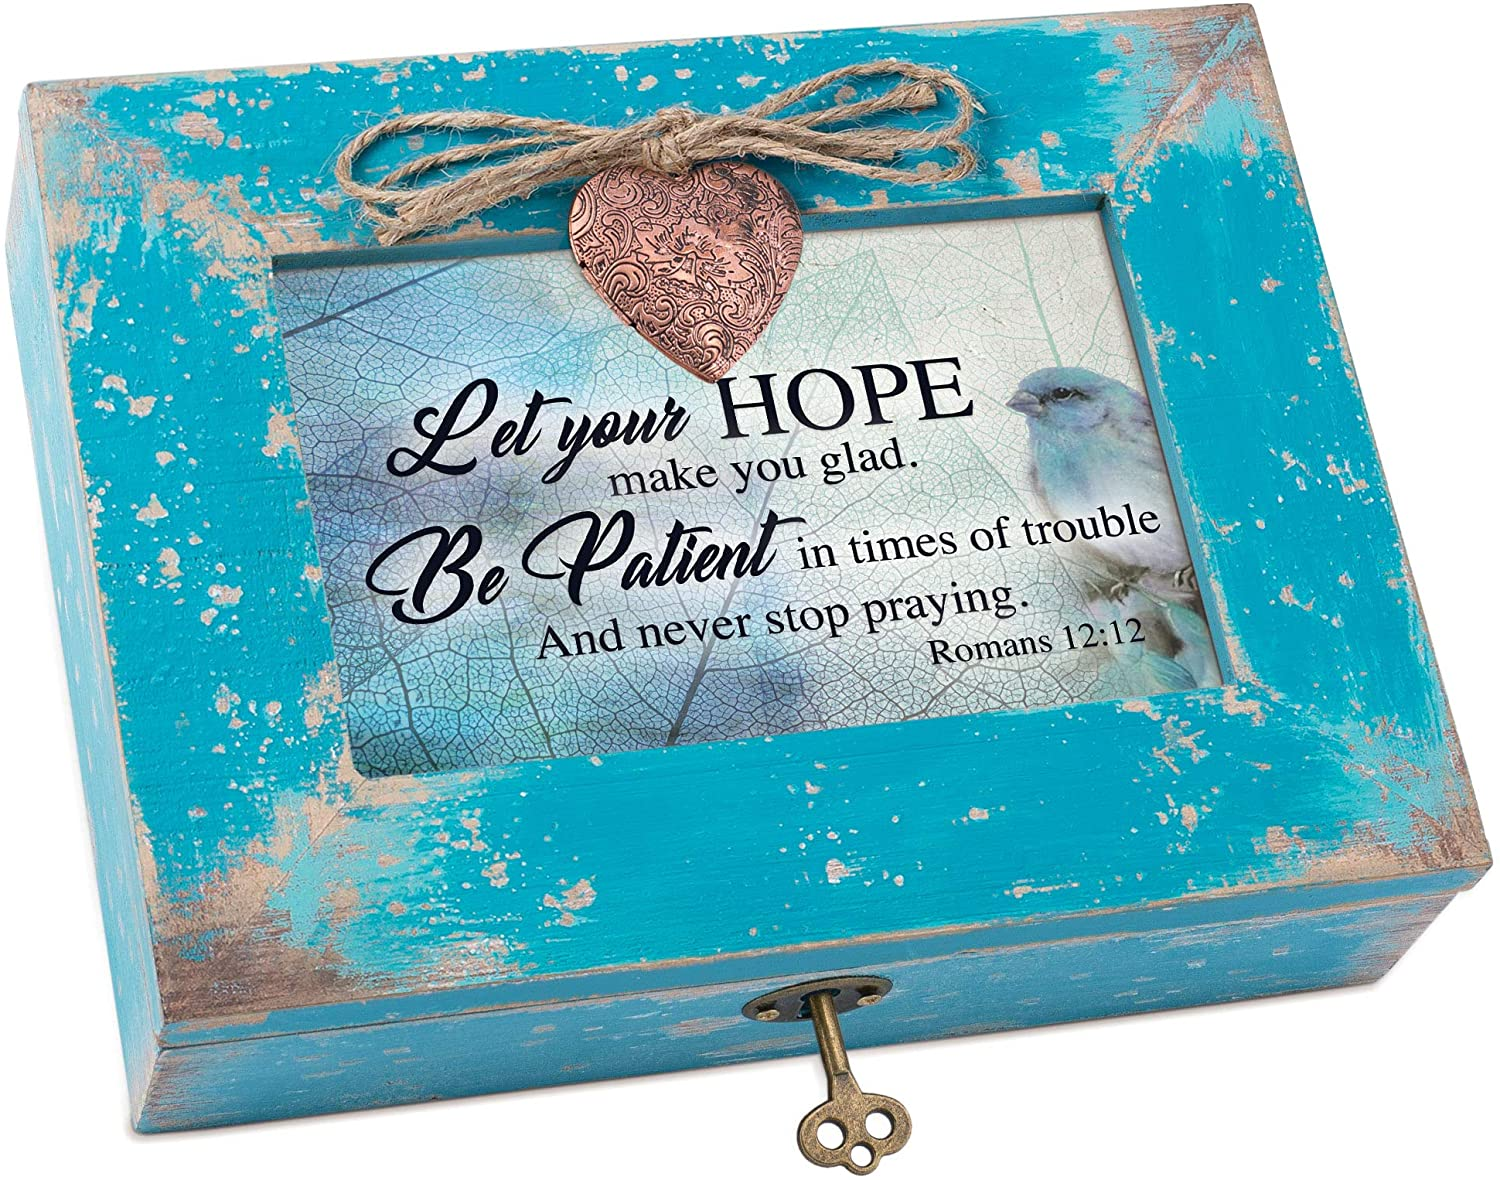 Cottage Garden Let Your Hope Be Patient Teal Distressed Wood Locket Music Box Plays Amazing Grace